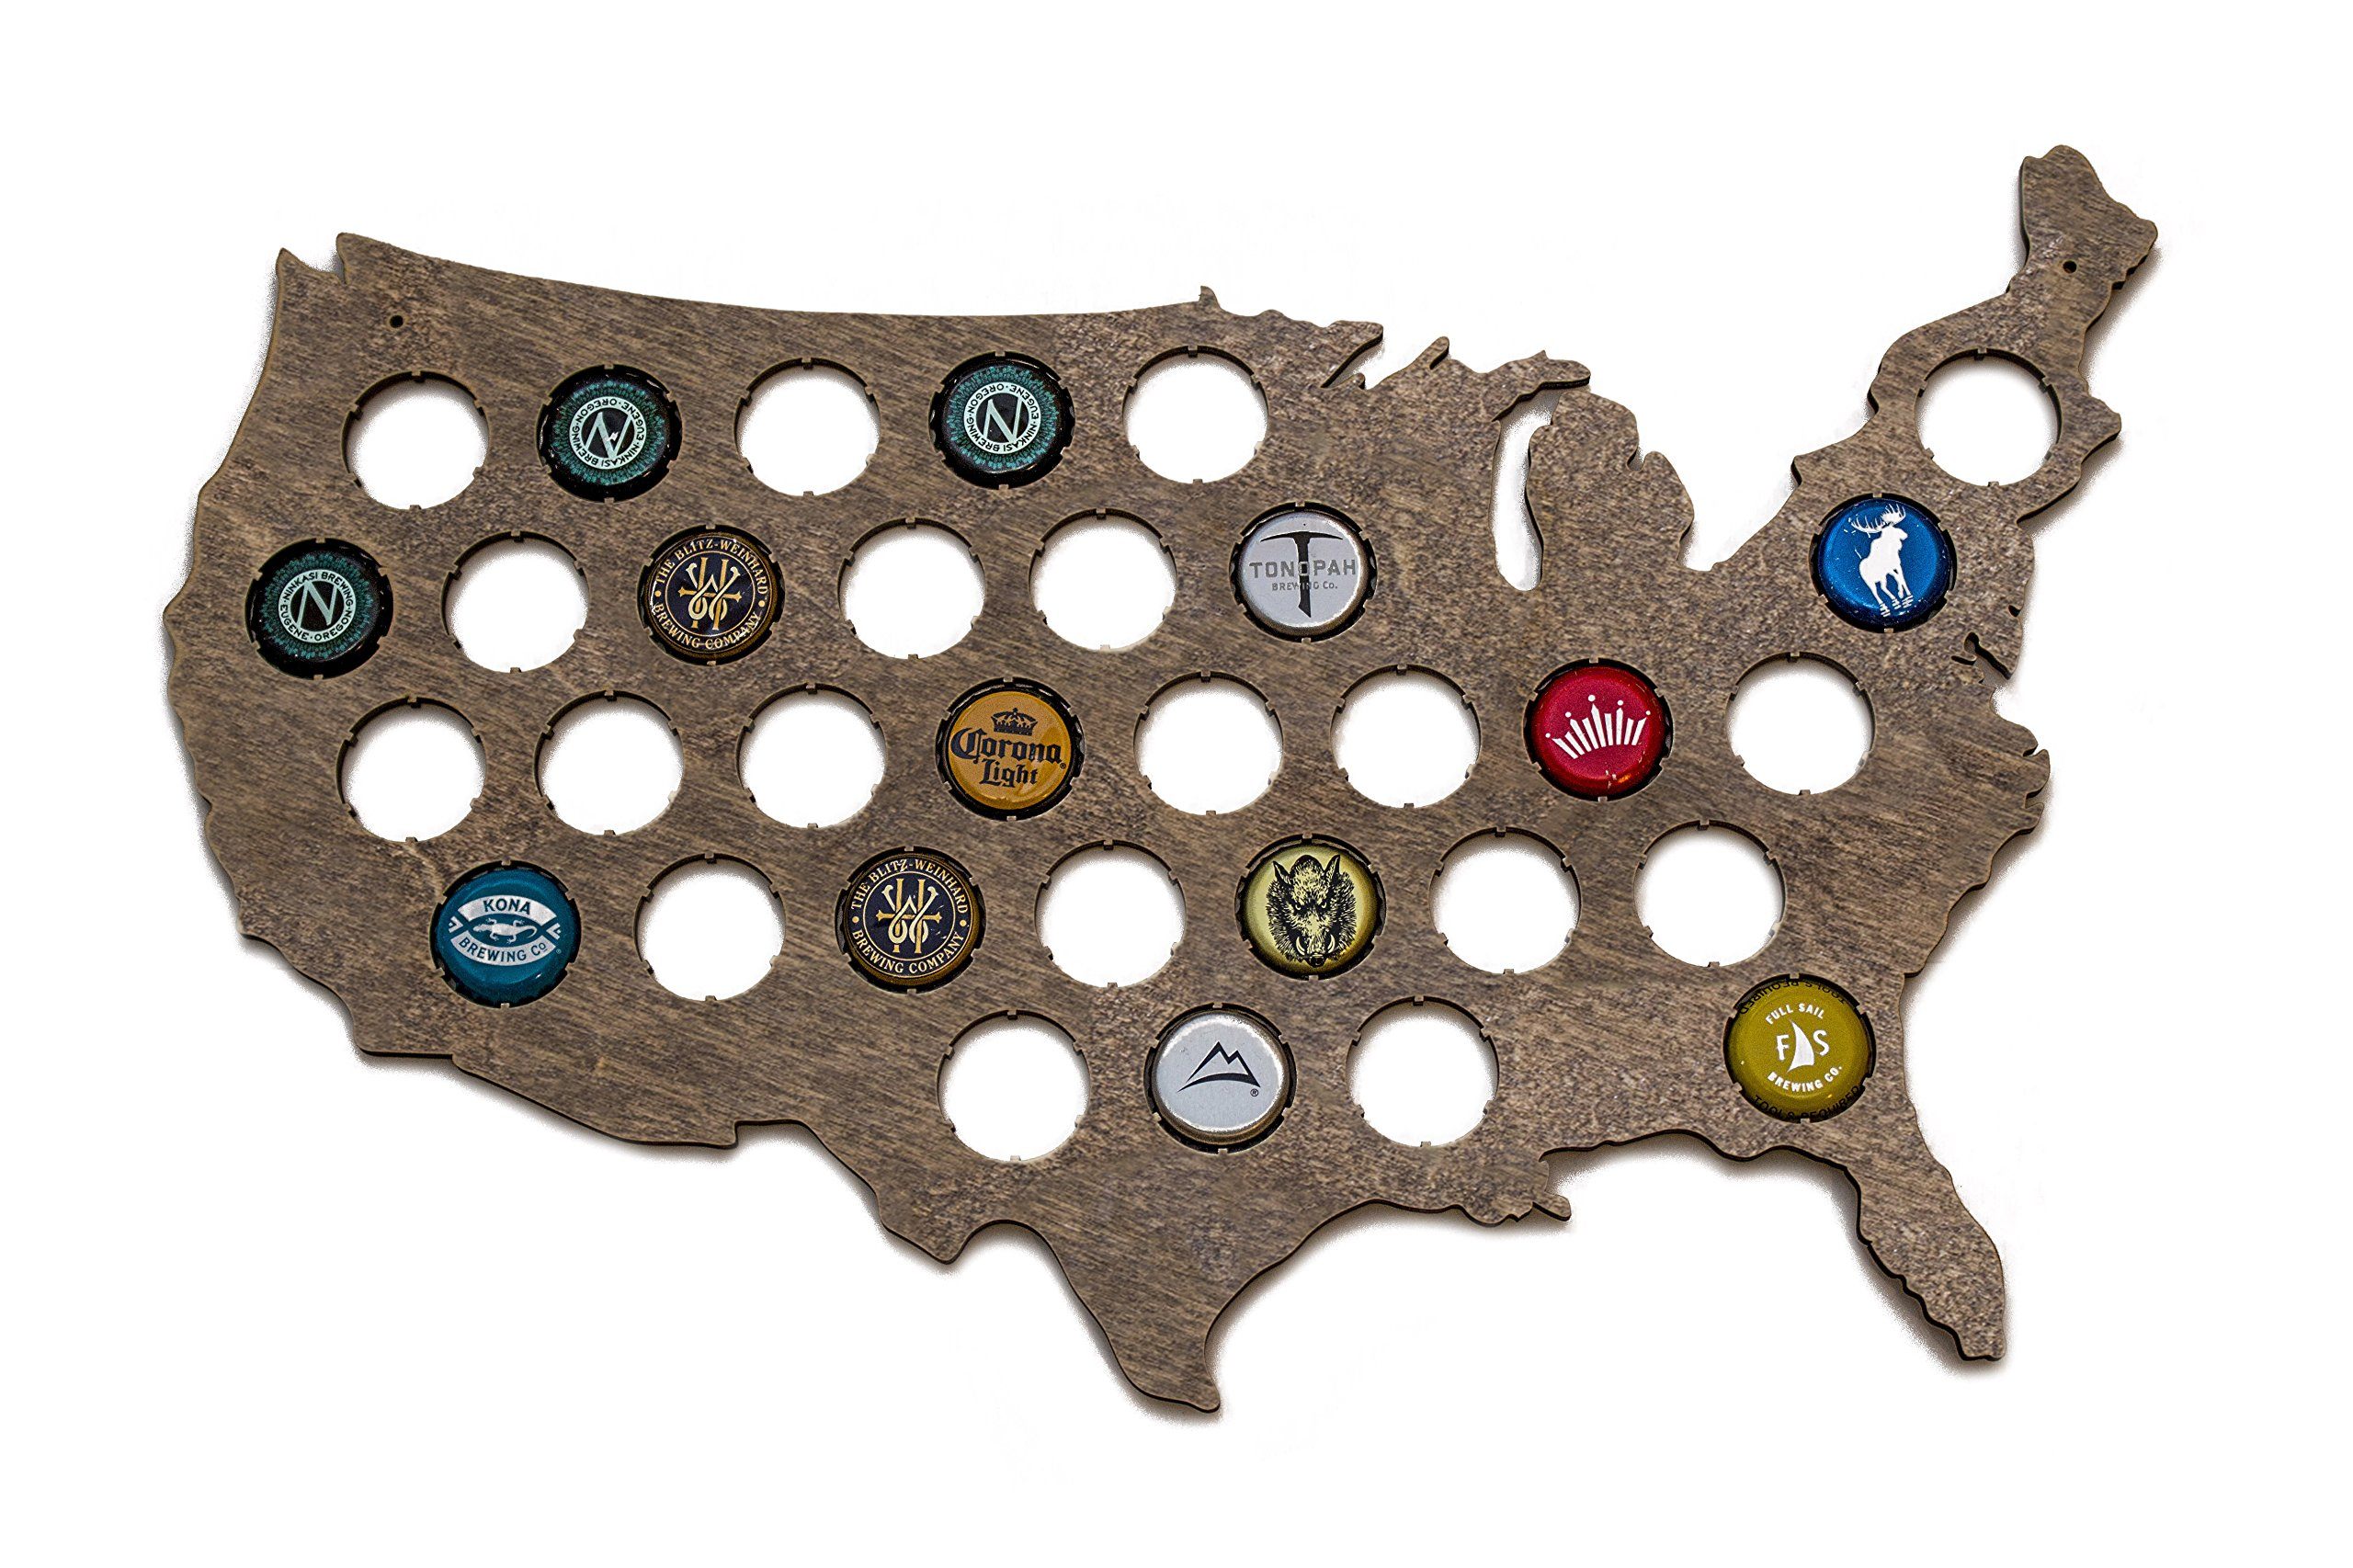 USA Beer Cap Map - Holds 32 Craft Beer Bottle Caps (Small) (Dark Stain)